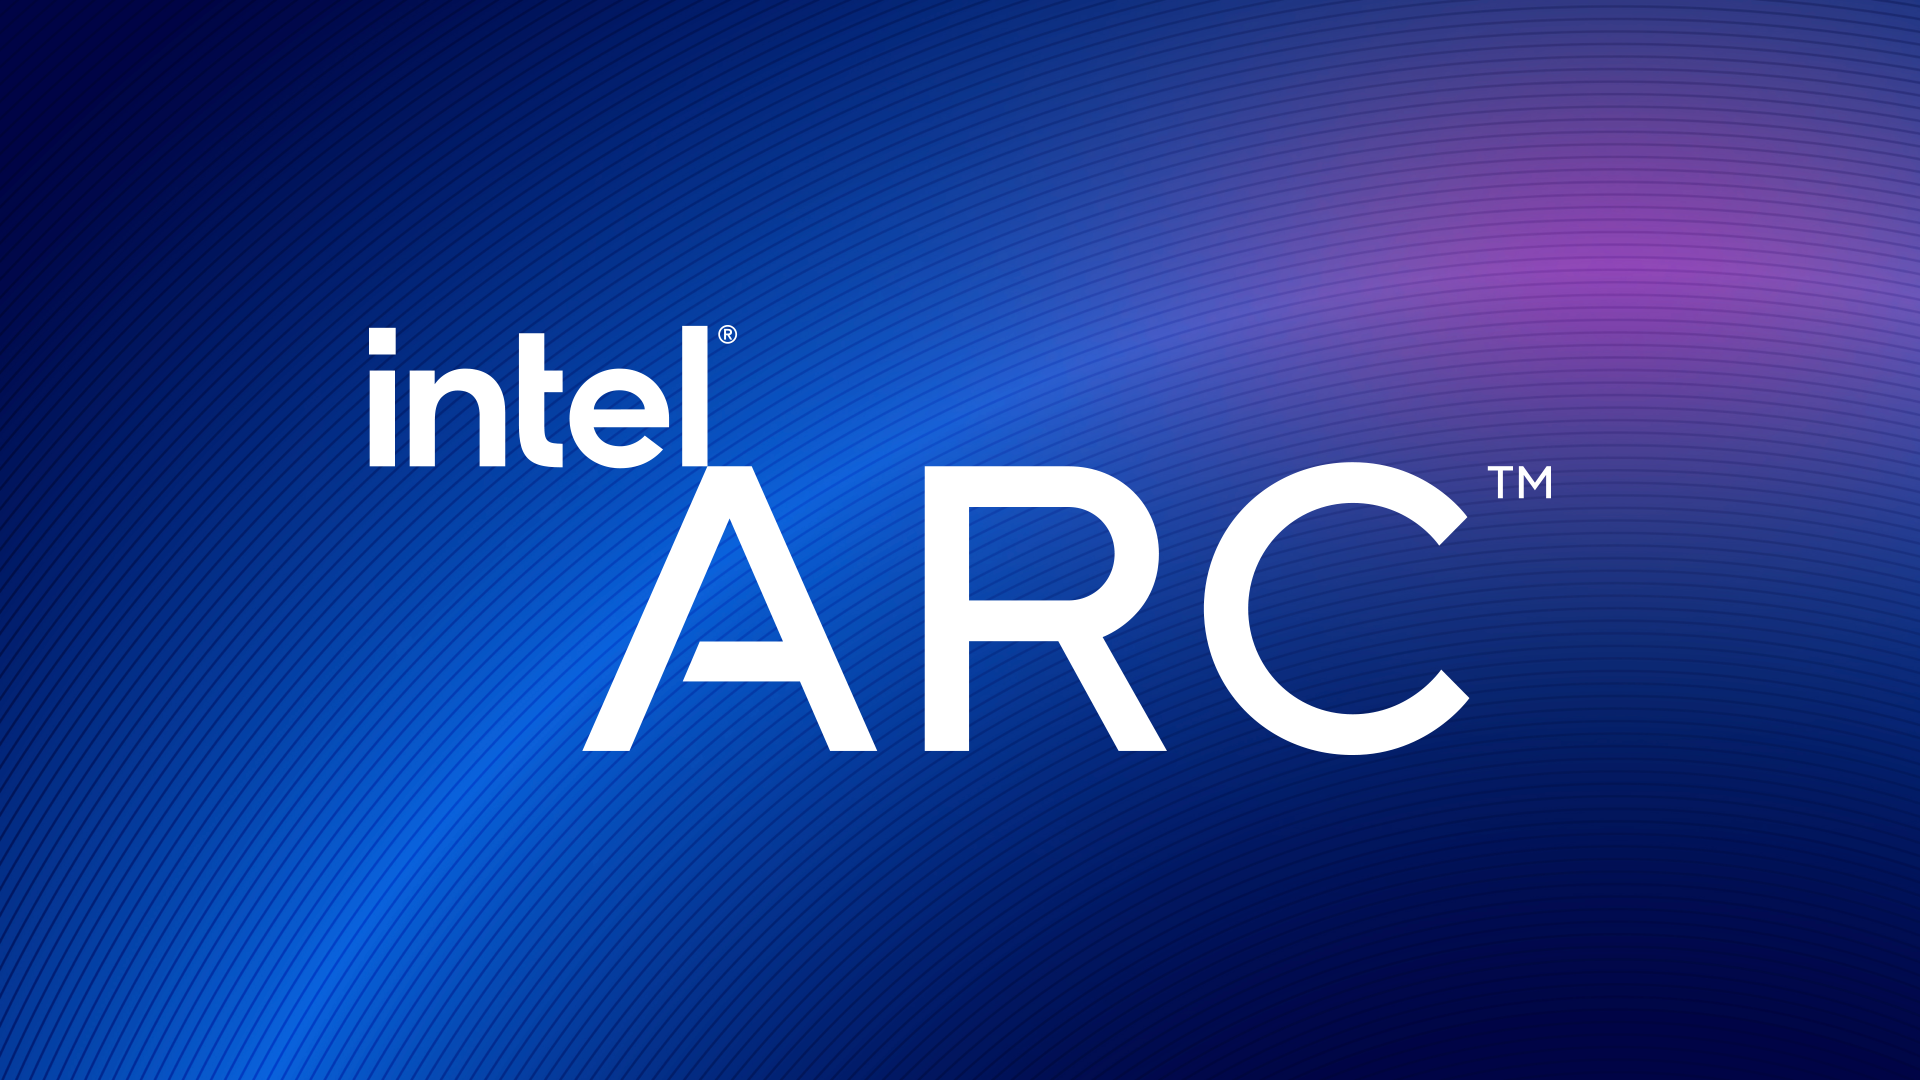 What's New:Intel today revealed the brand for its upcomingconsumer high-performance graphicsproducts: Intel® Arc™.&n